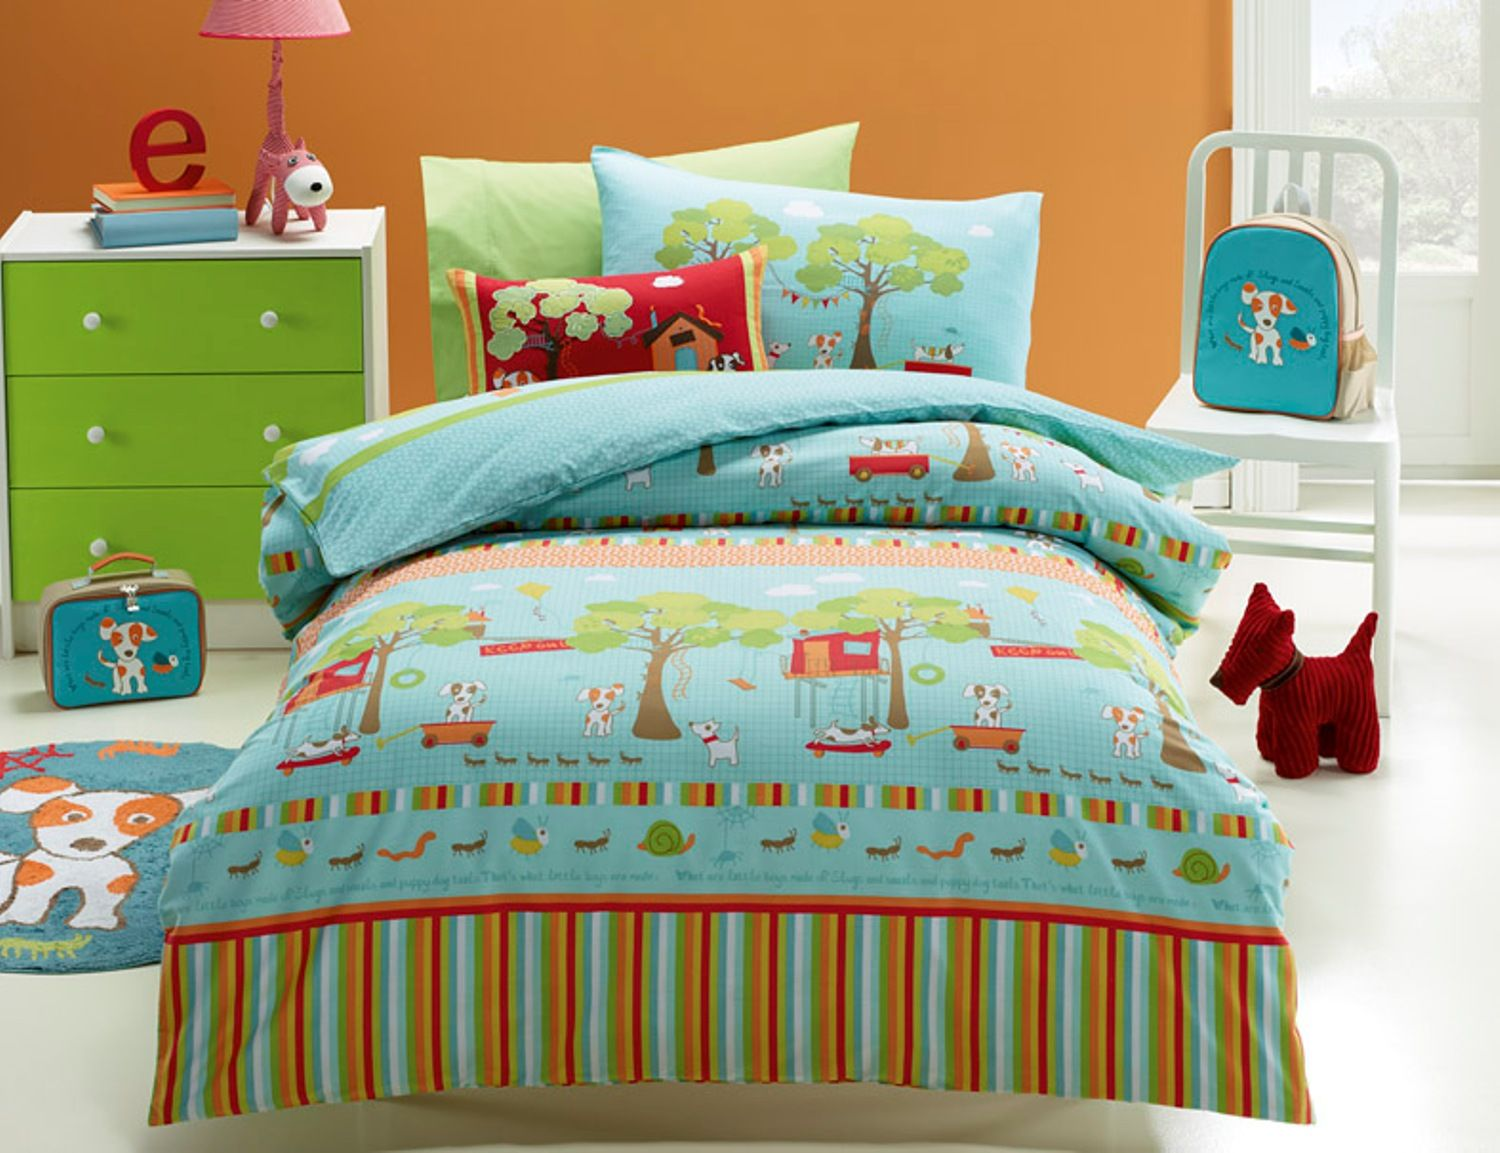 Oliver Duvet Cover by Jiggle and Giggle from Harvey Norman